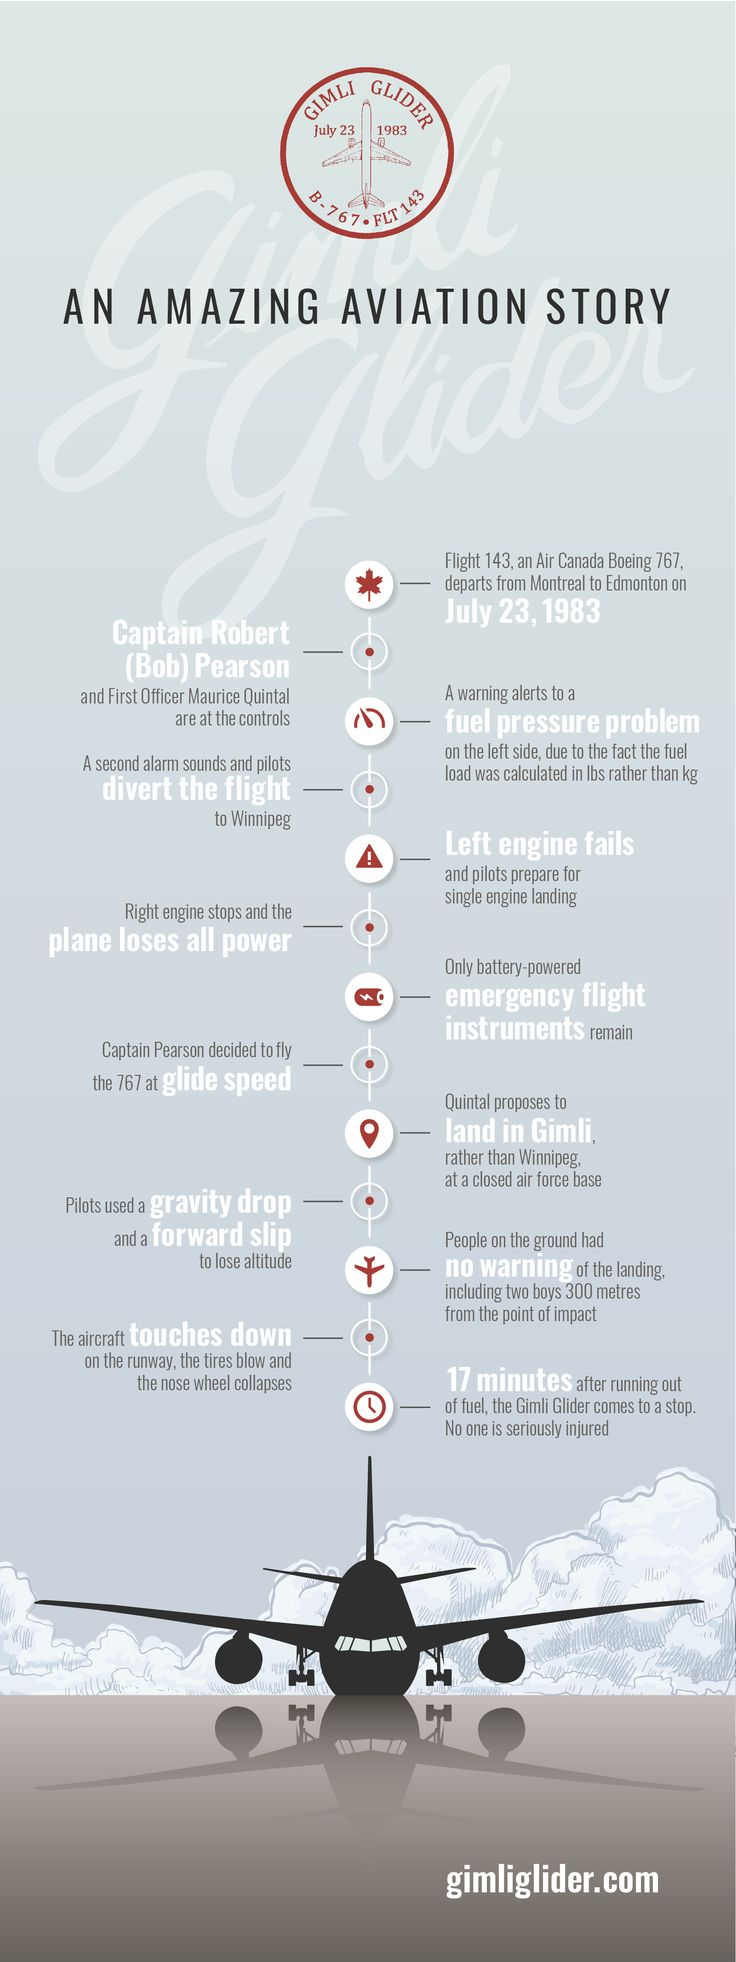 Quick facts on the story of the GImli Glider